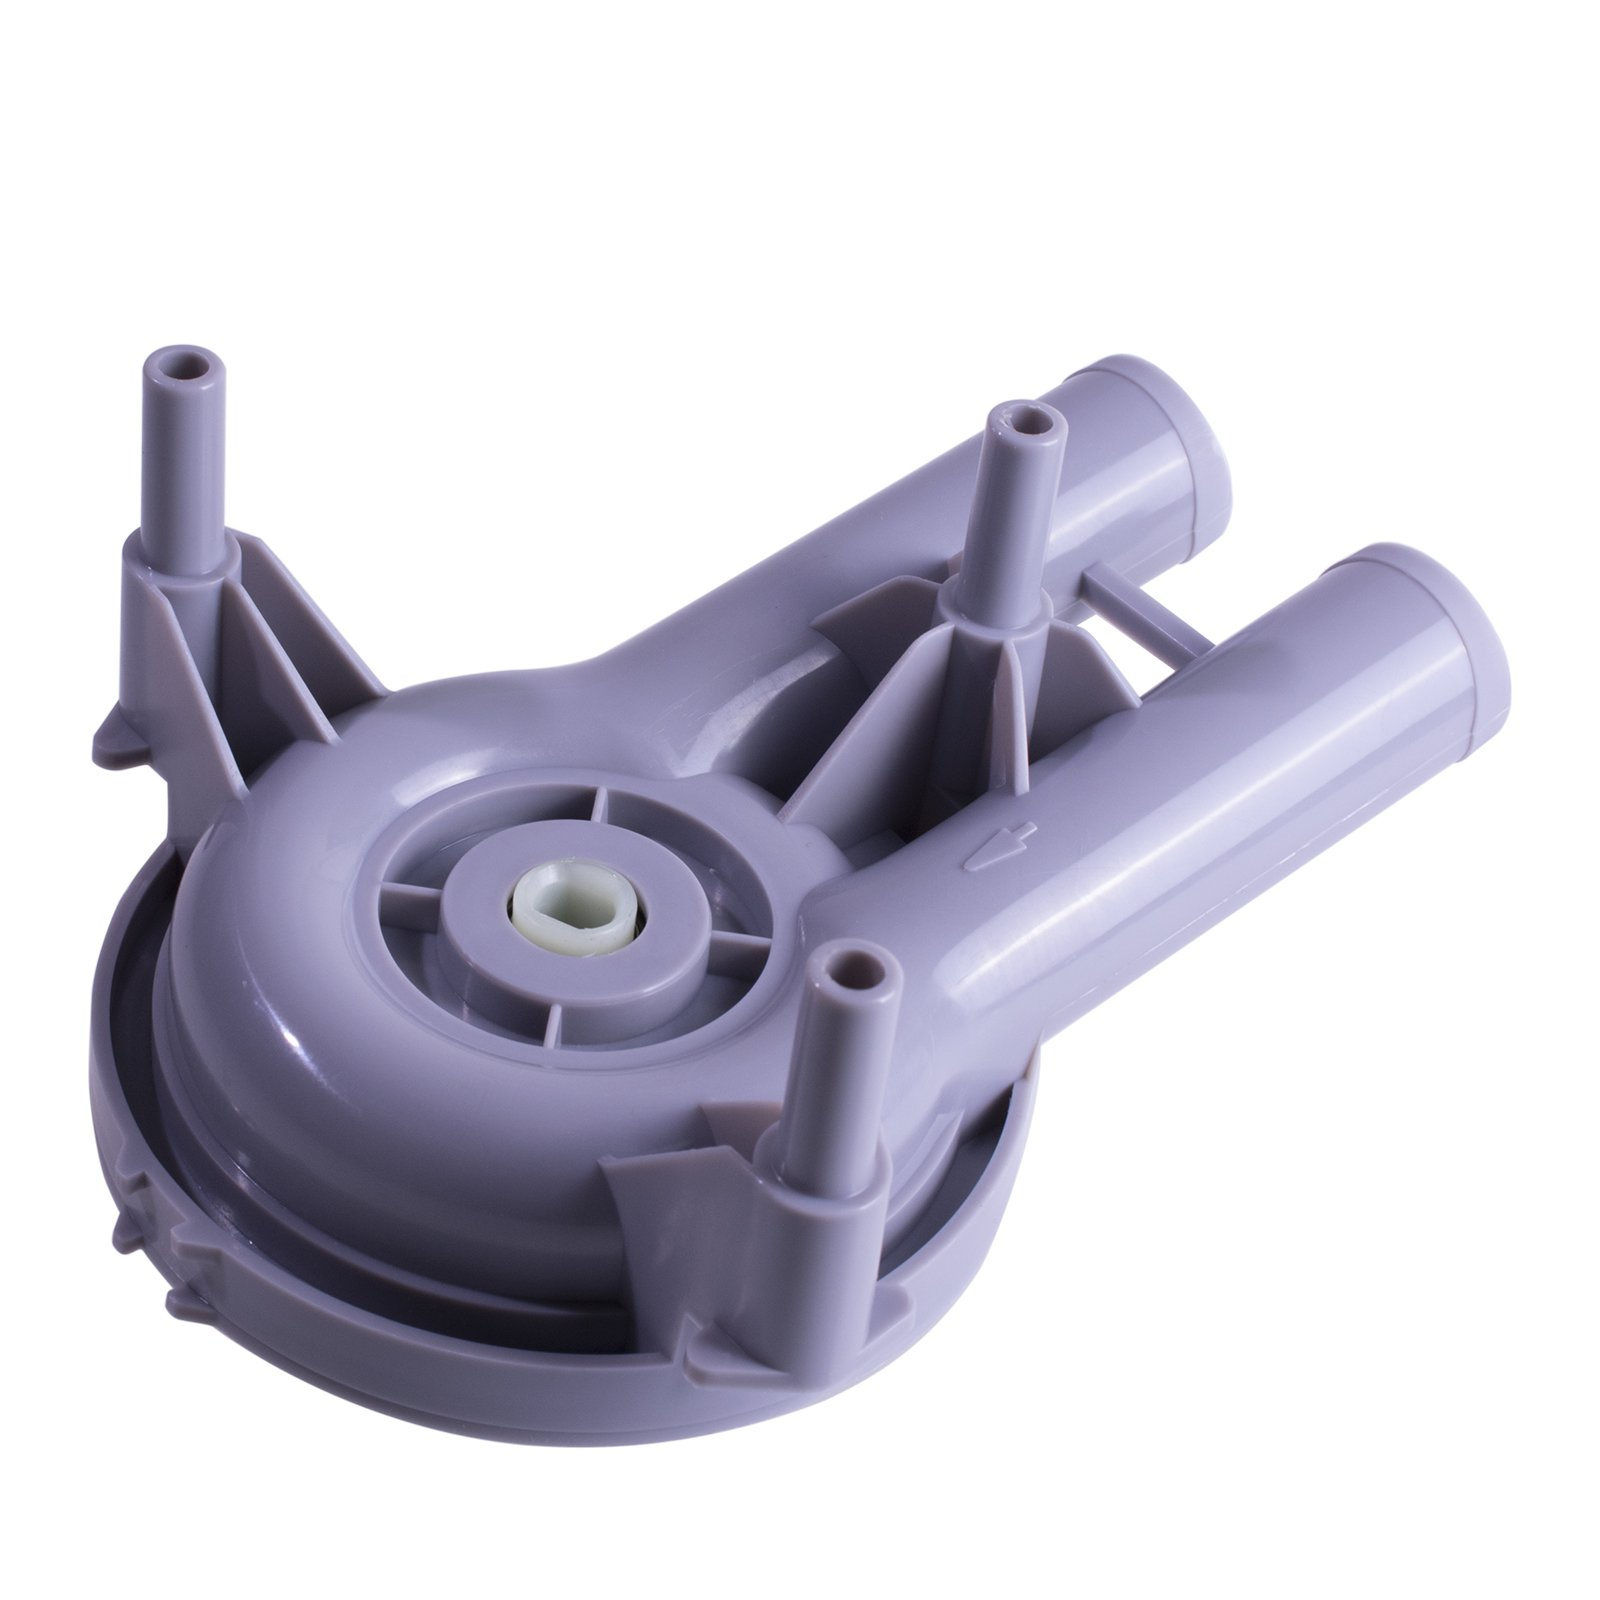 Replacement Drain Pump For 27001233 Fits Maytag Admiral Amana Washer 27001036/36863